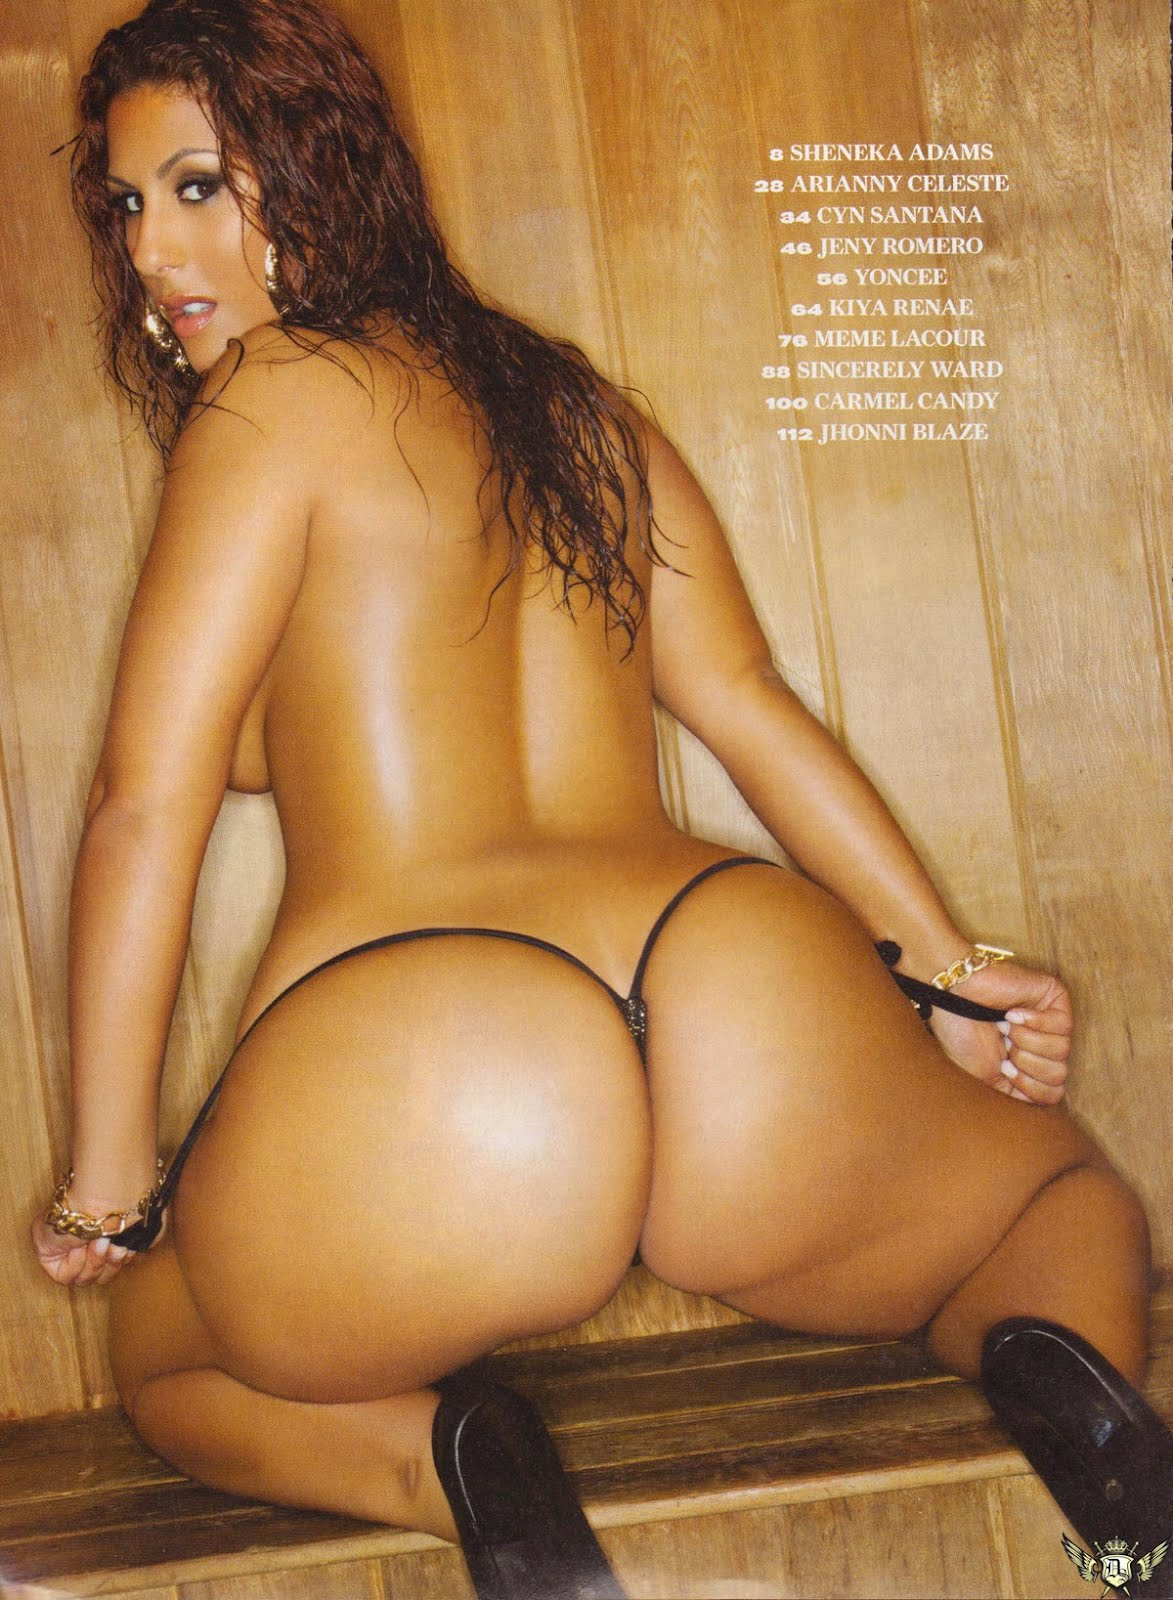 Topic nude on king magazine with